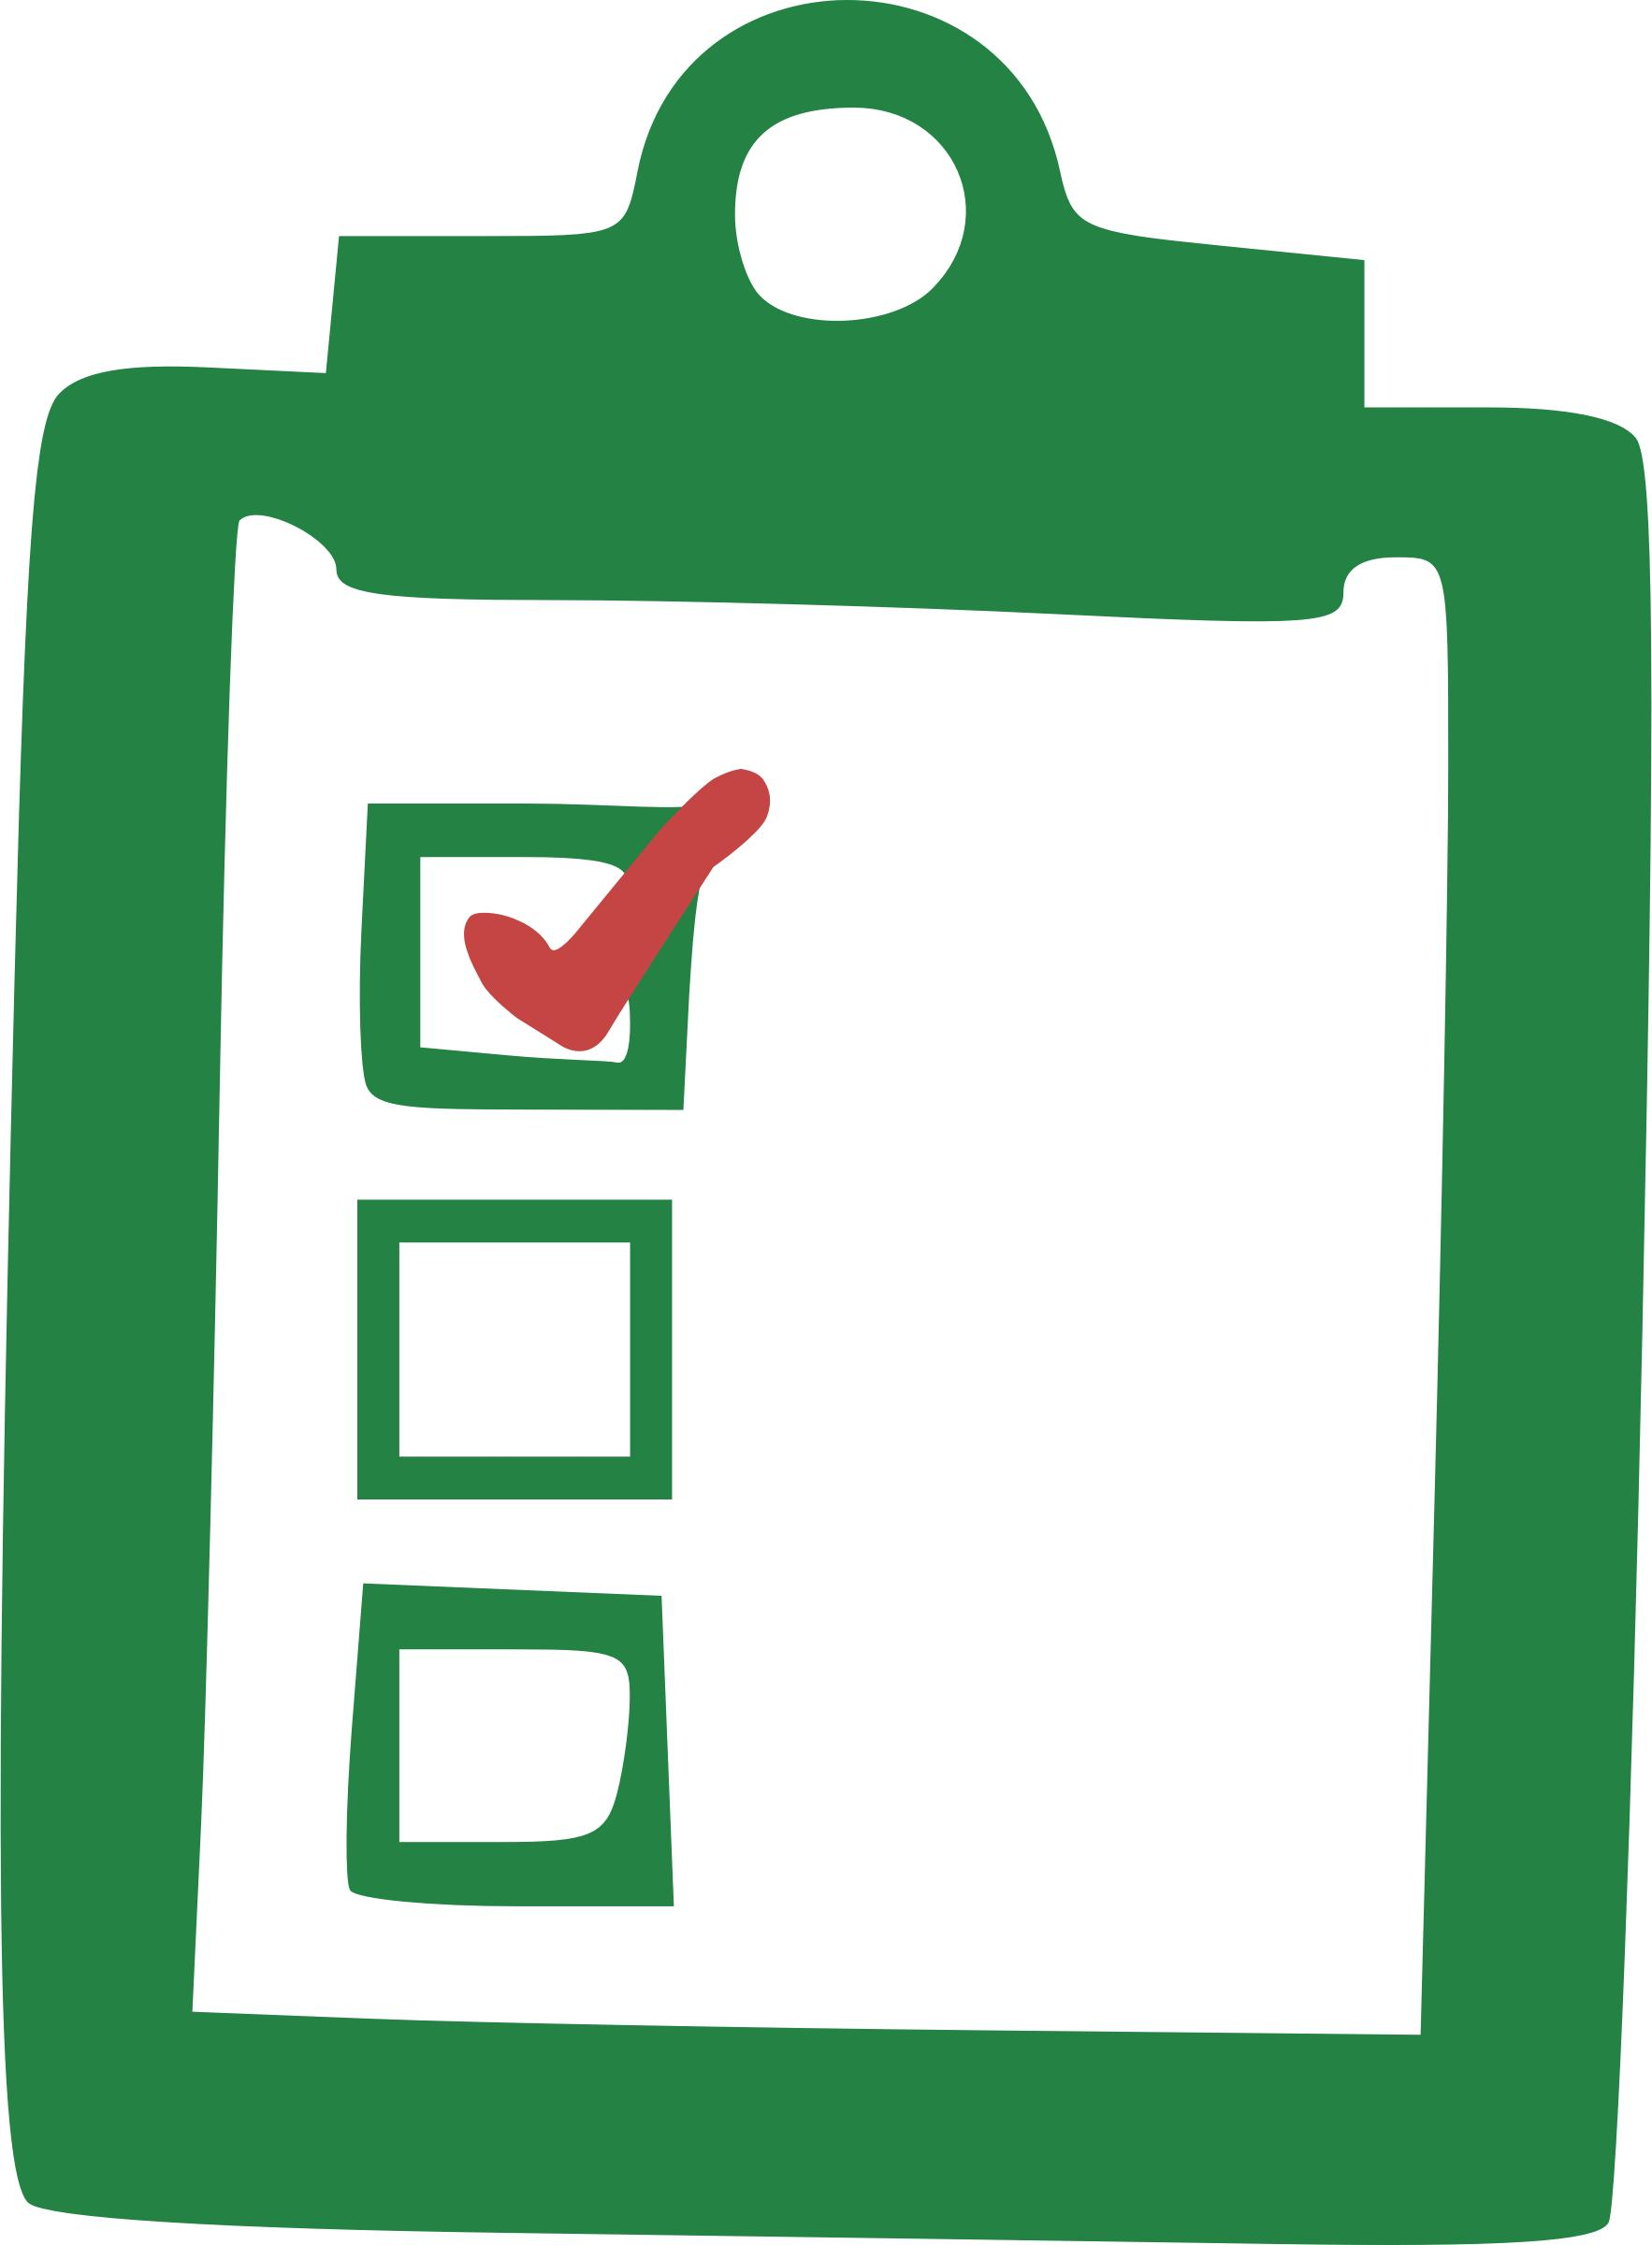 Checklist clipart icon. Icons png free and